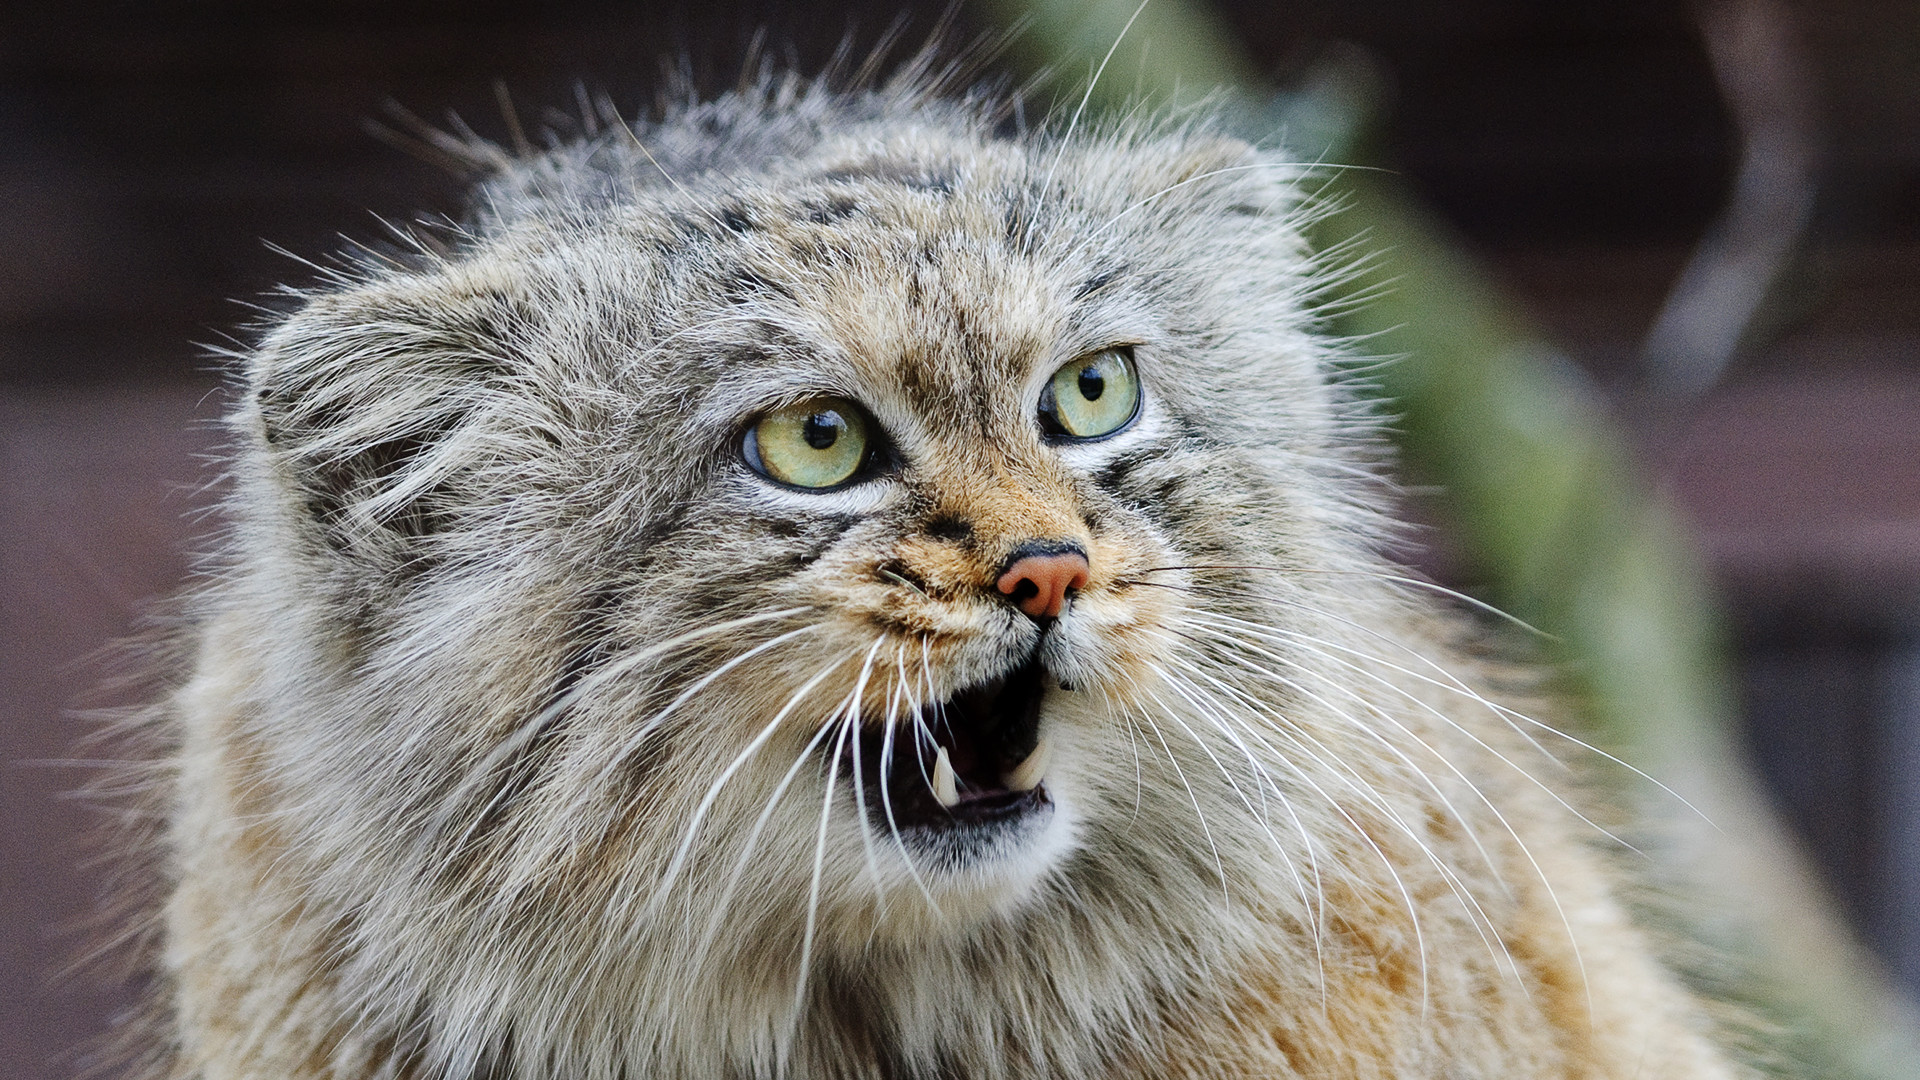 Would you pet a manul?